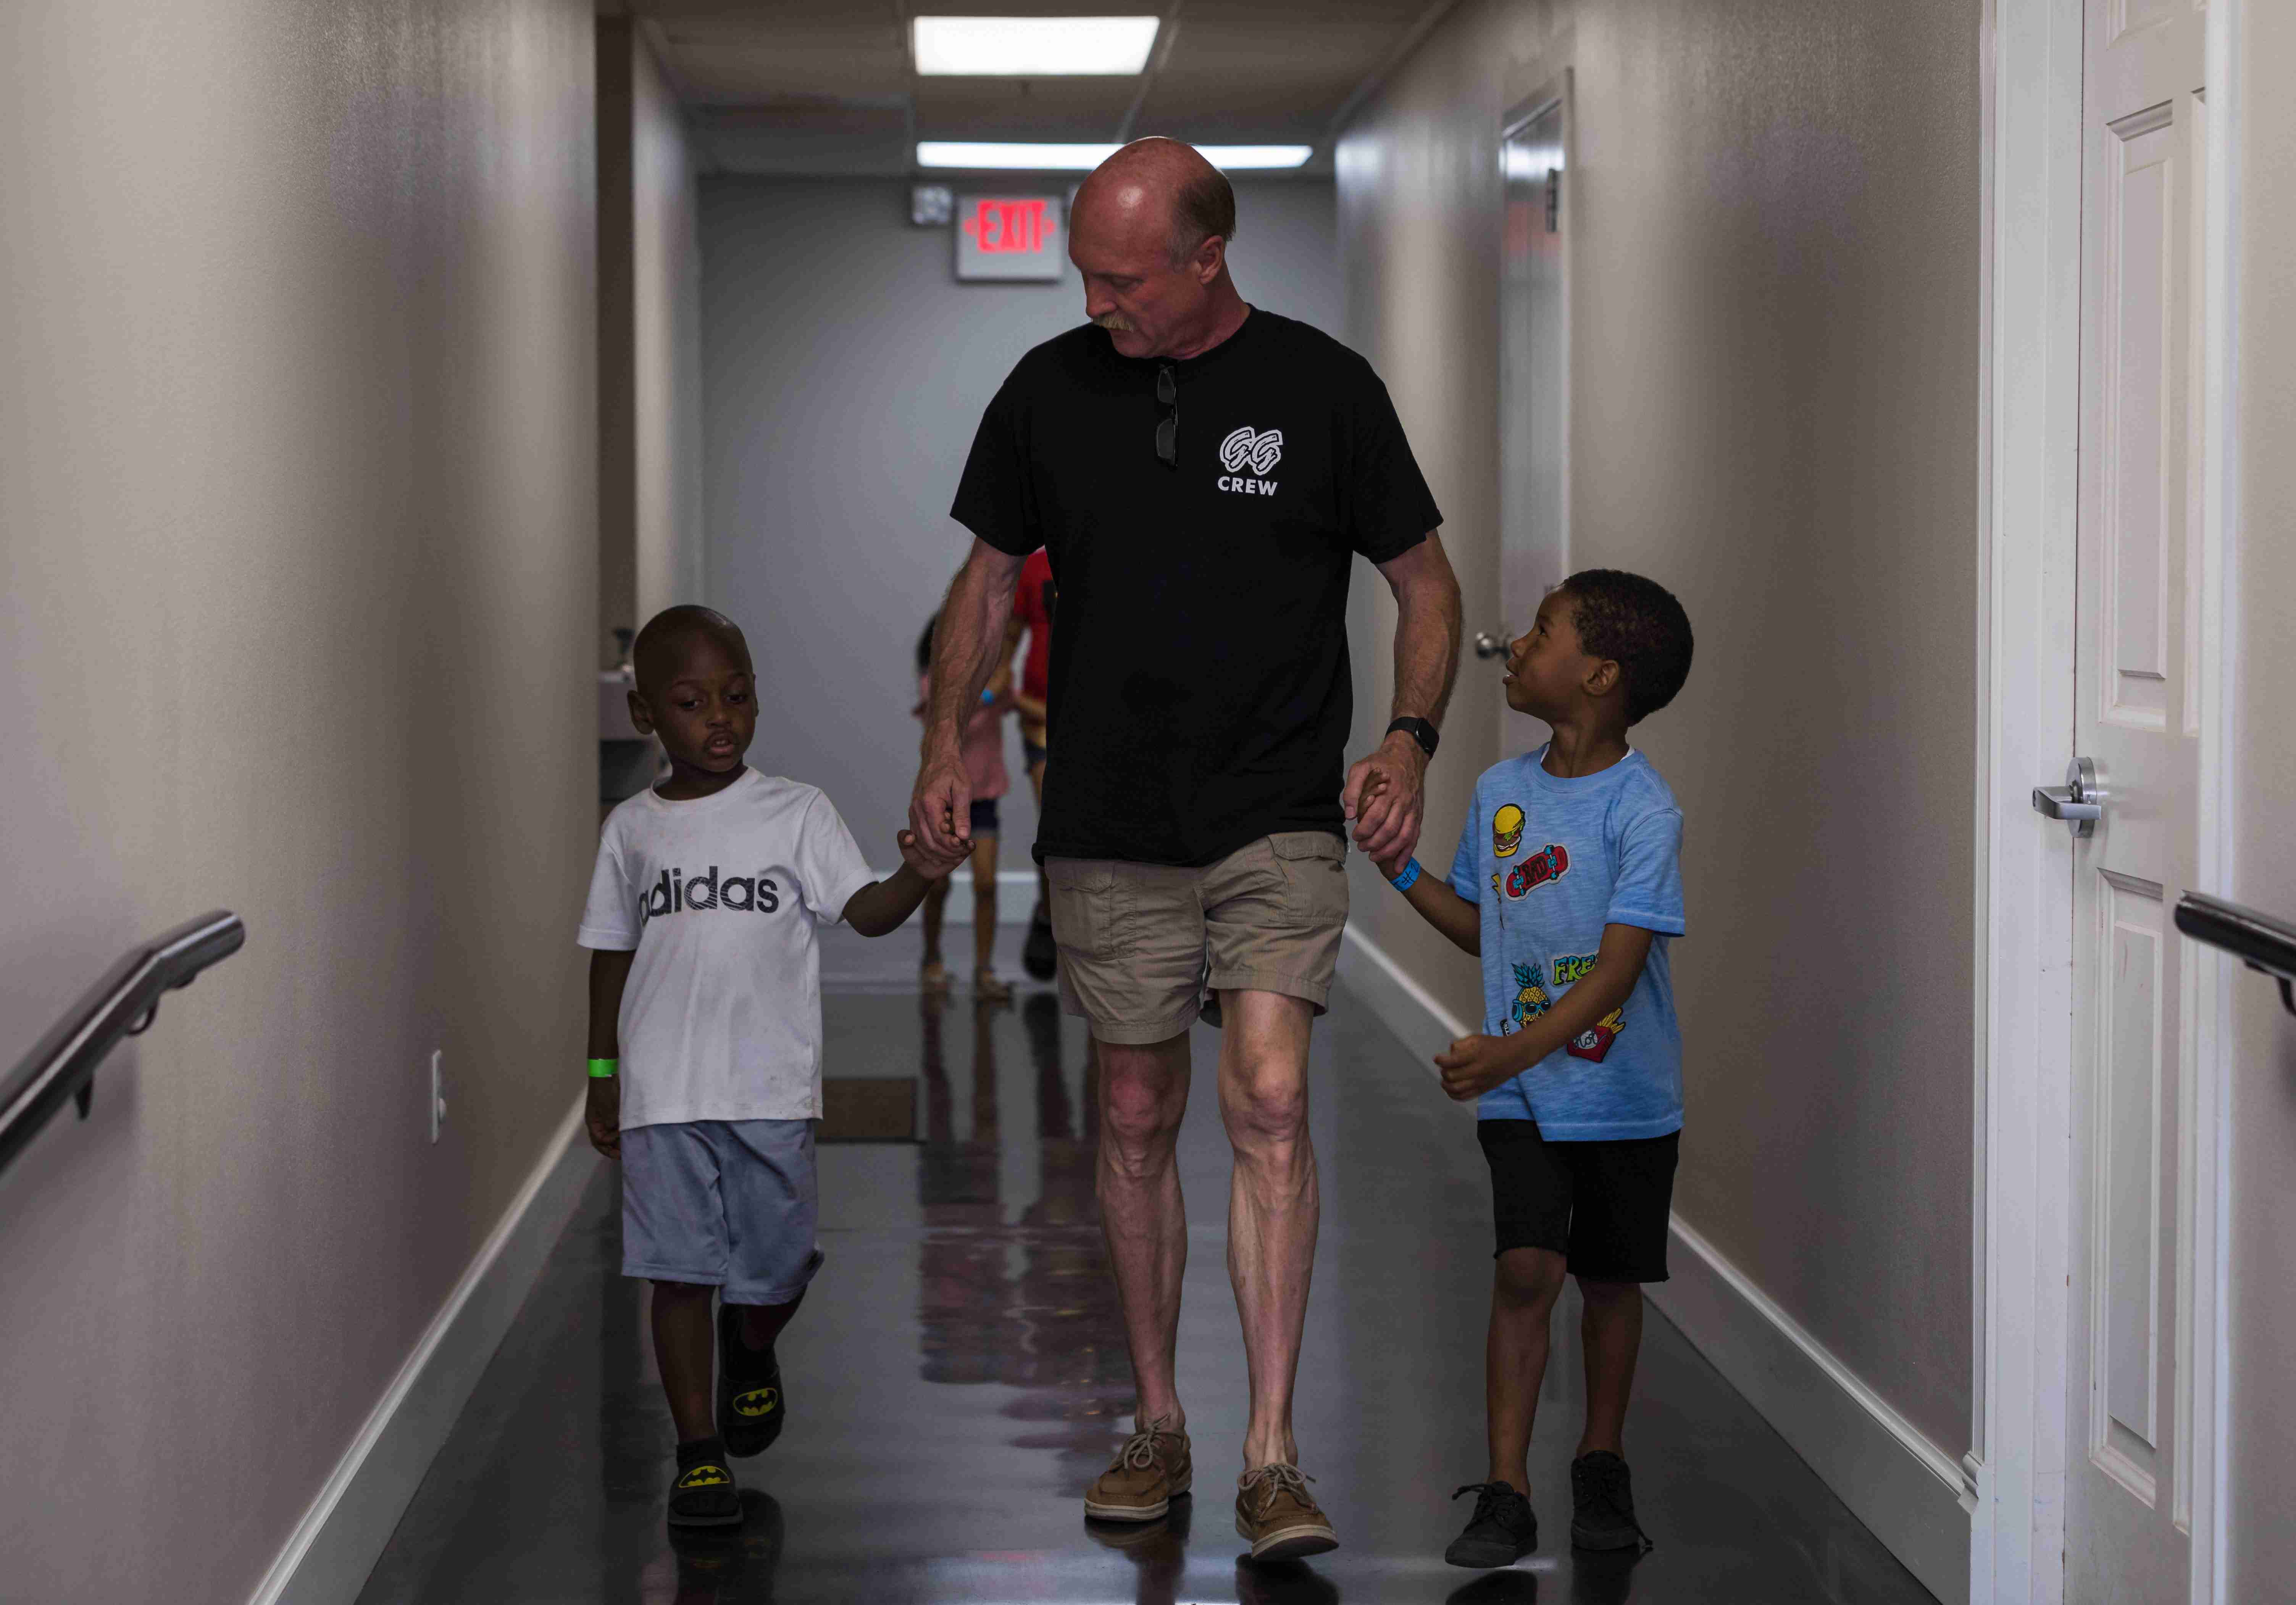 Children Walking with Volunteer Down Hallway